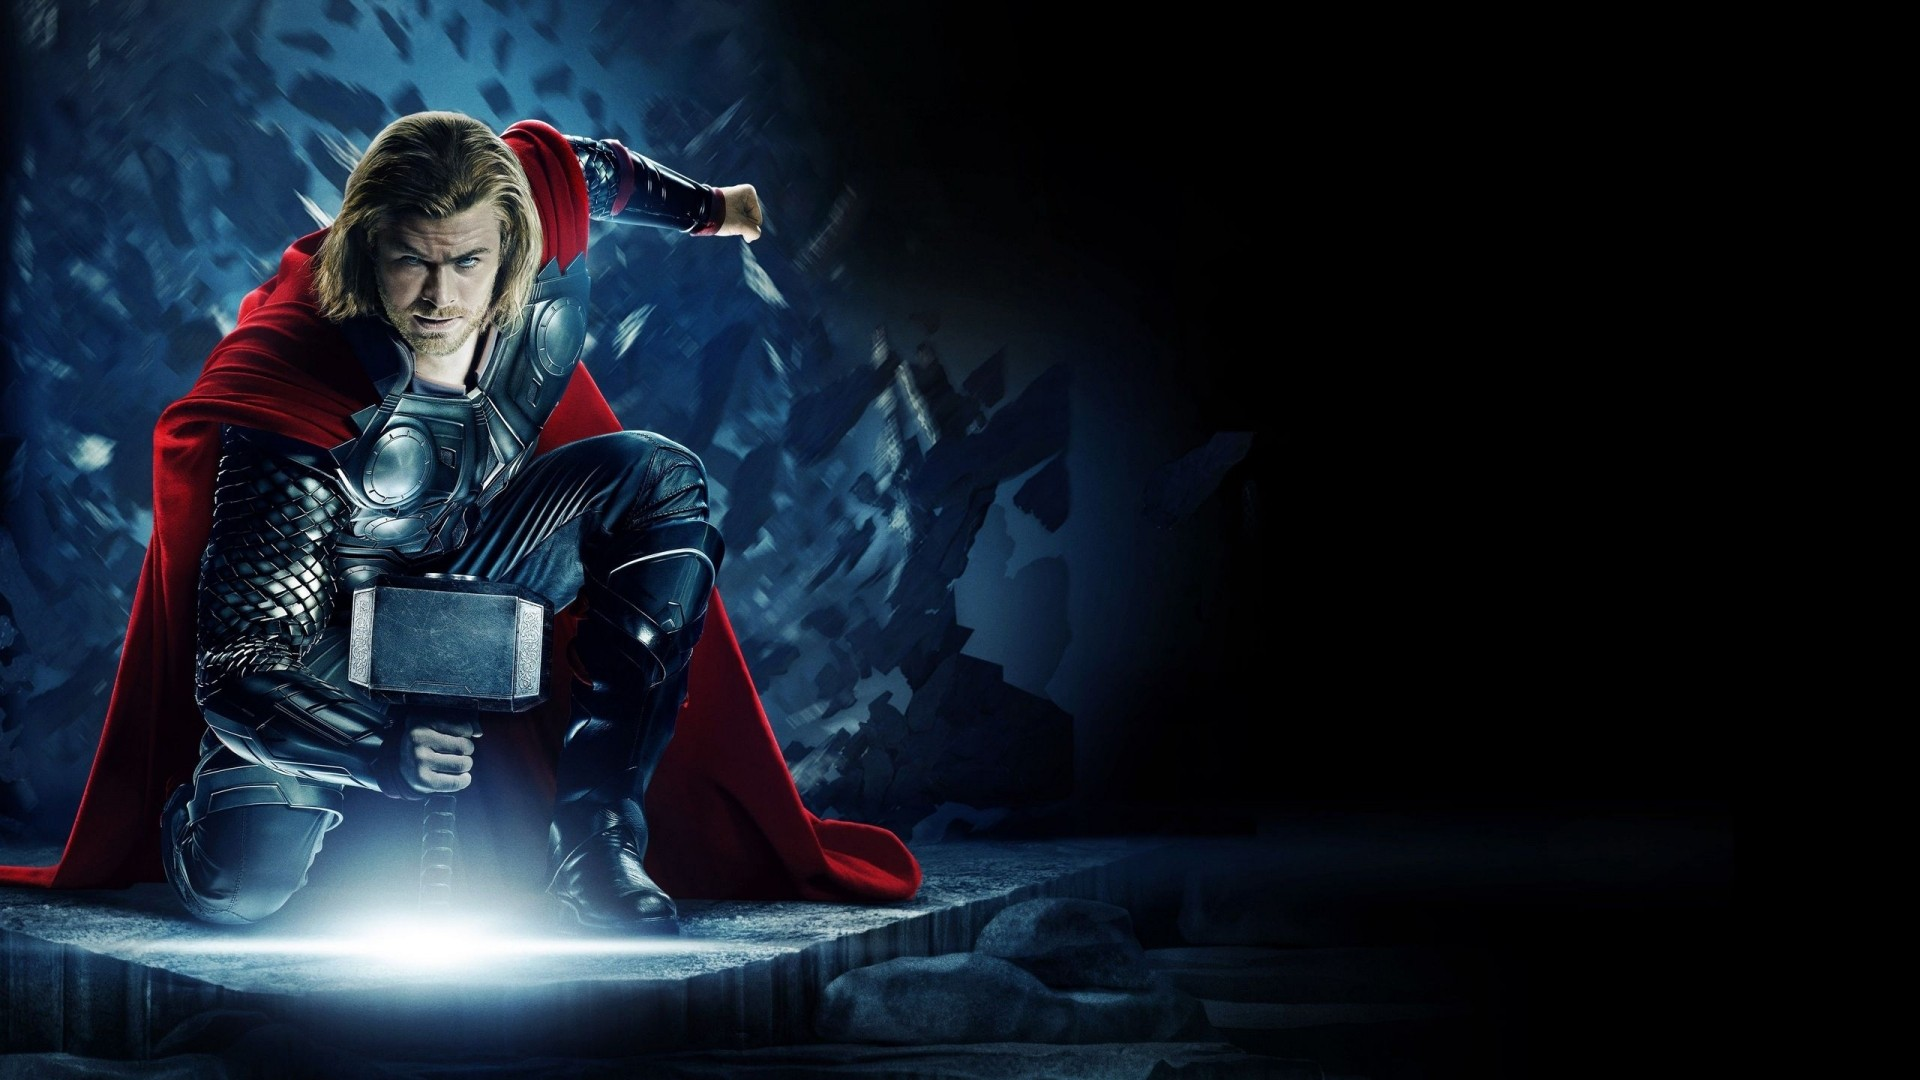 Thor Pictures Free Wallpaper: 35 Best Avengers Wallpaper For Desktop